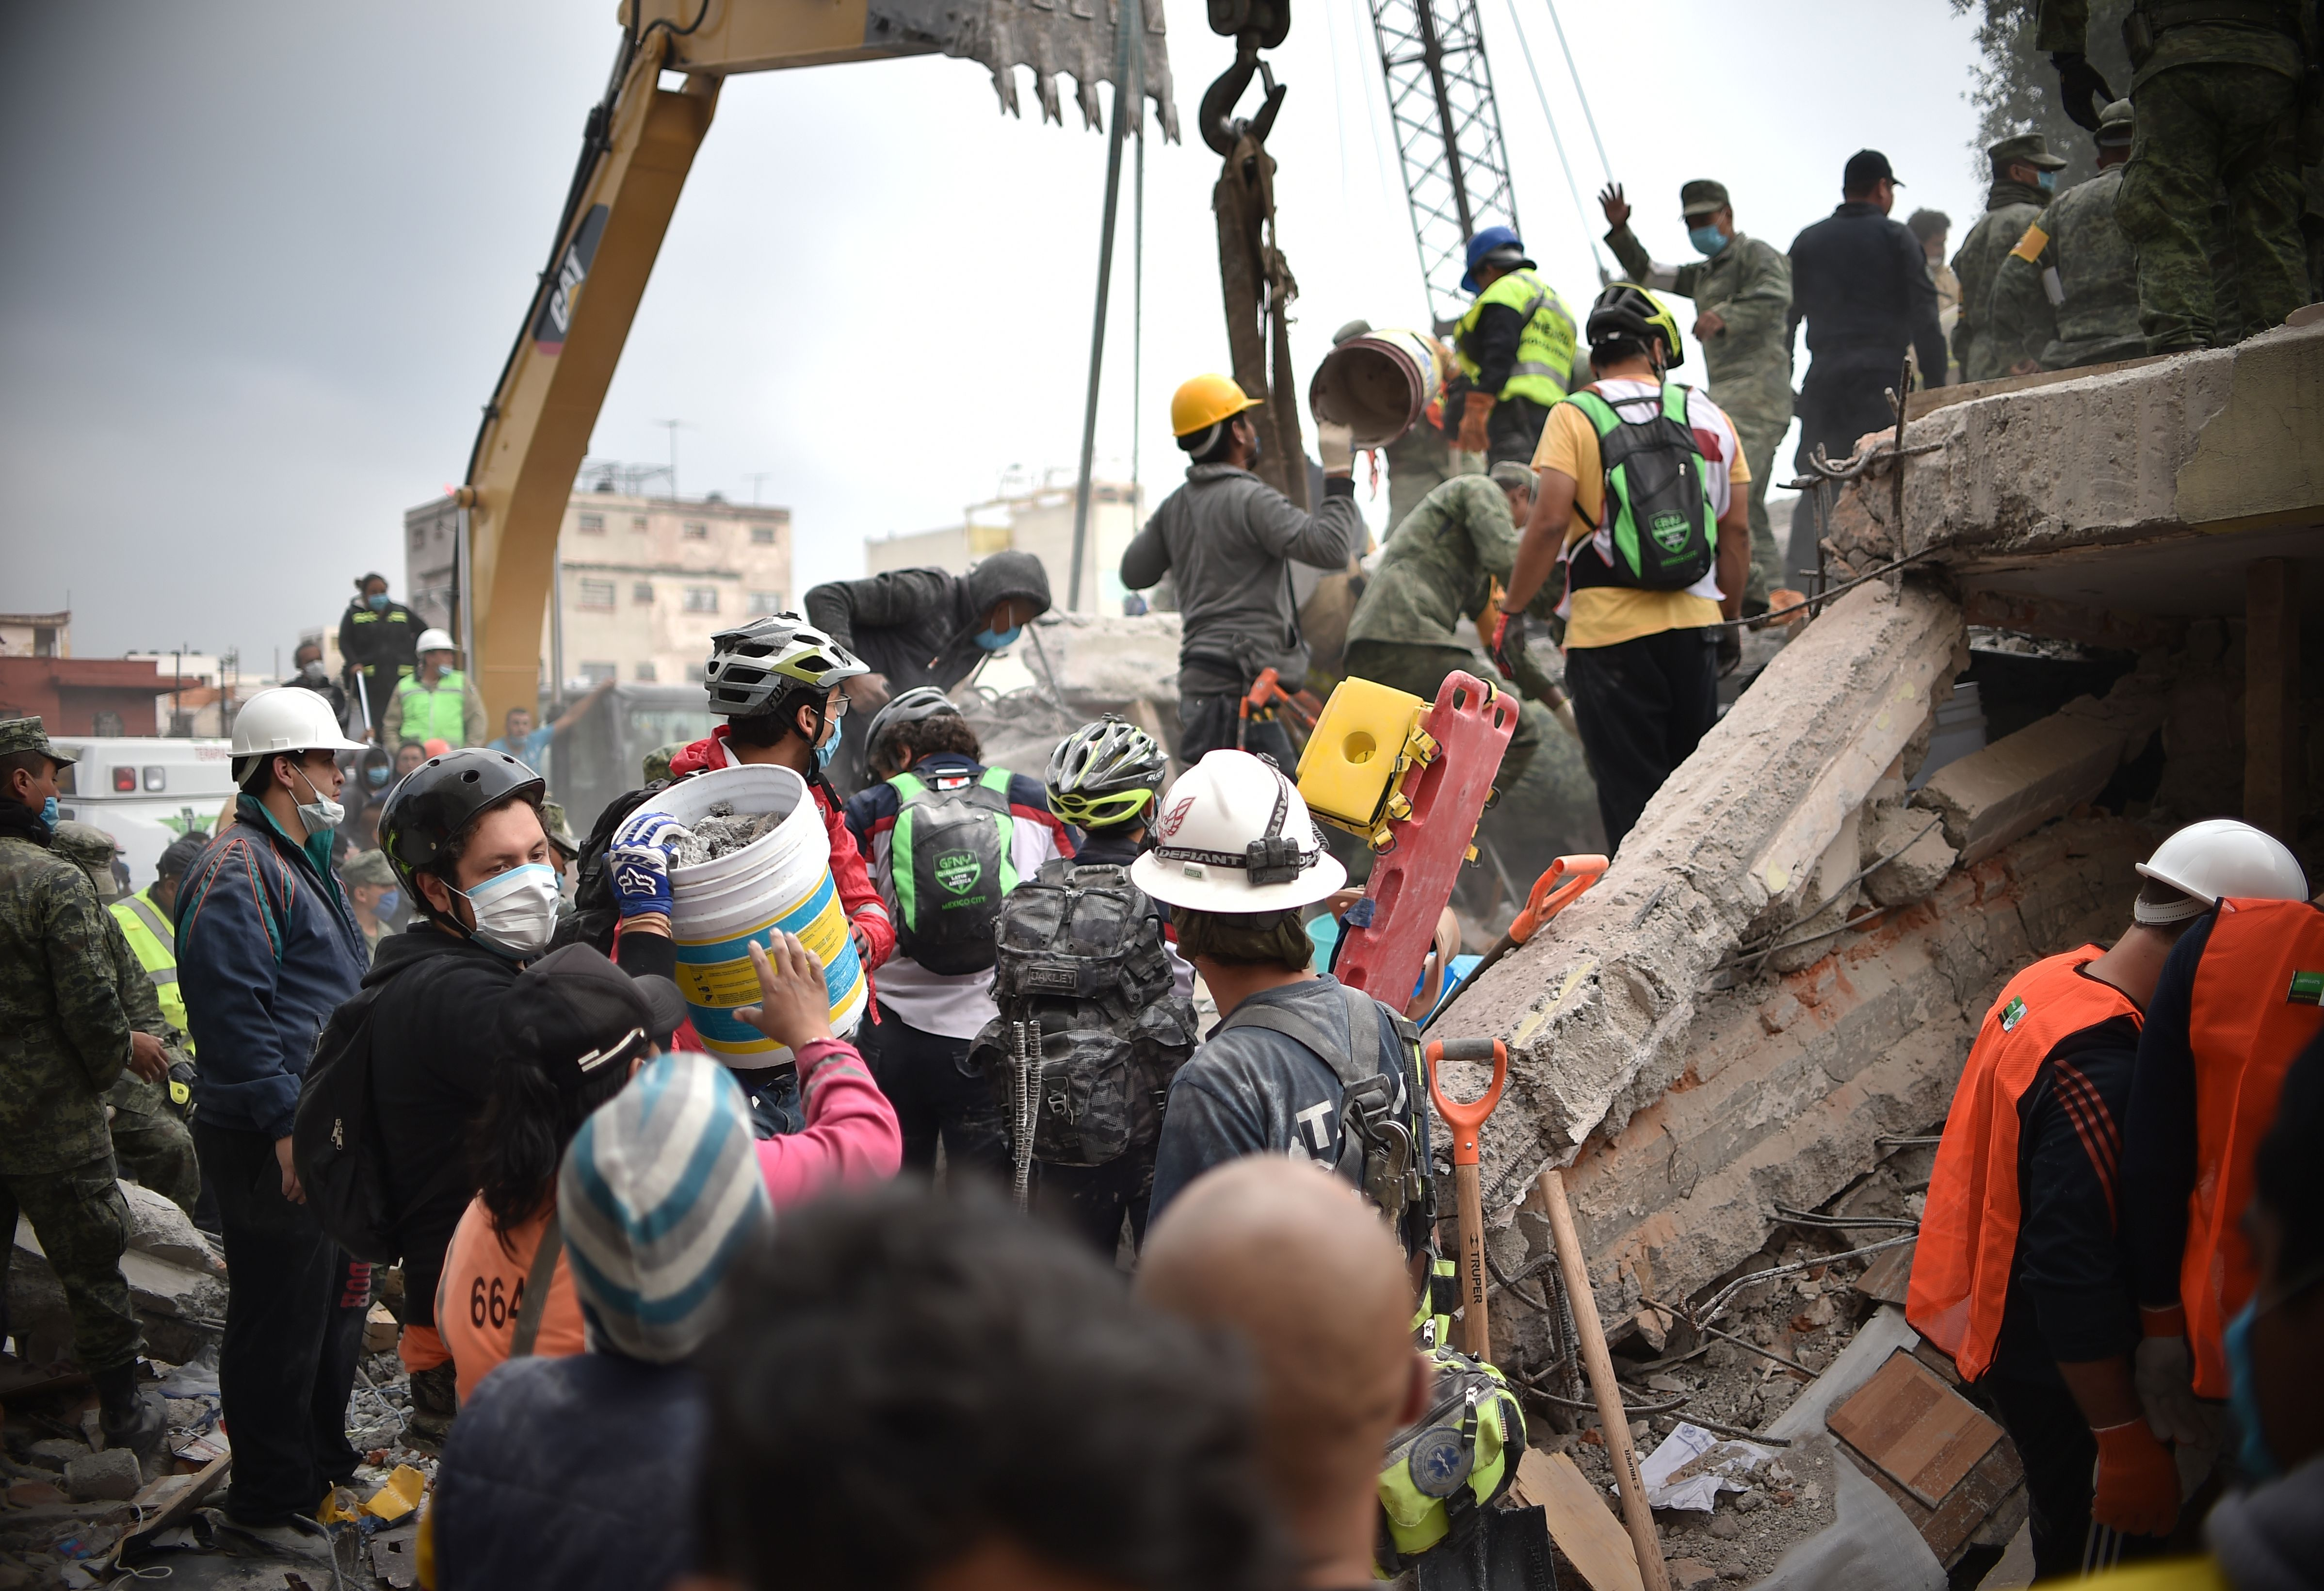 Volunteers remove rubble during the search for survivors in a flattened building in Mexico City on Sept. 20, 2017. (YURI CORTEZ/AFP/Getty Images)